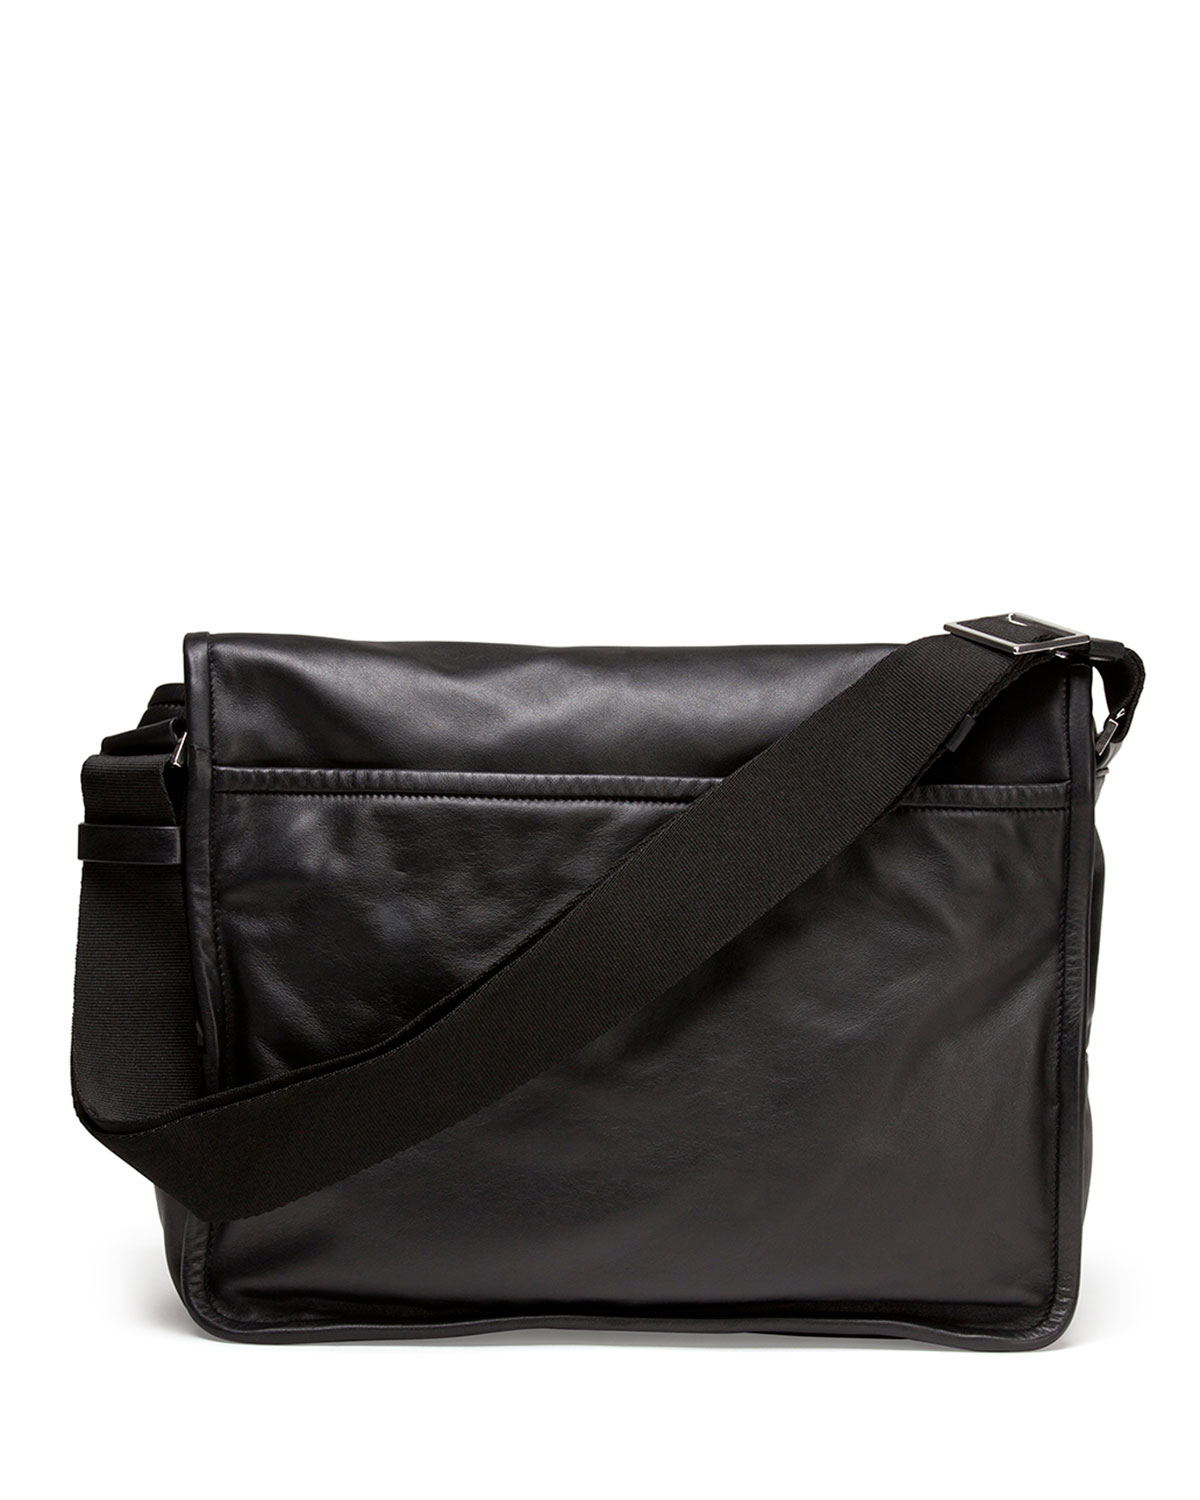 eaa286bedb Lyst - Givenchy Obsedia Leather Messenger Bag in Black for Men